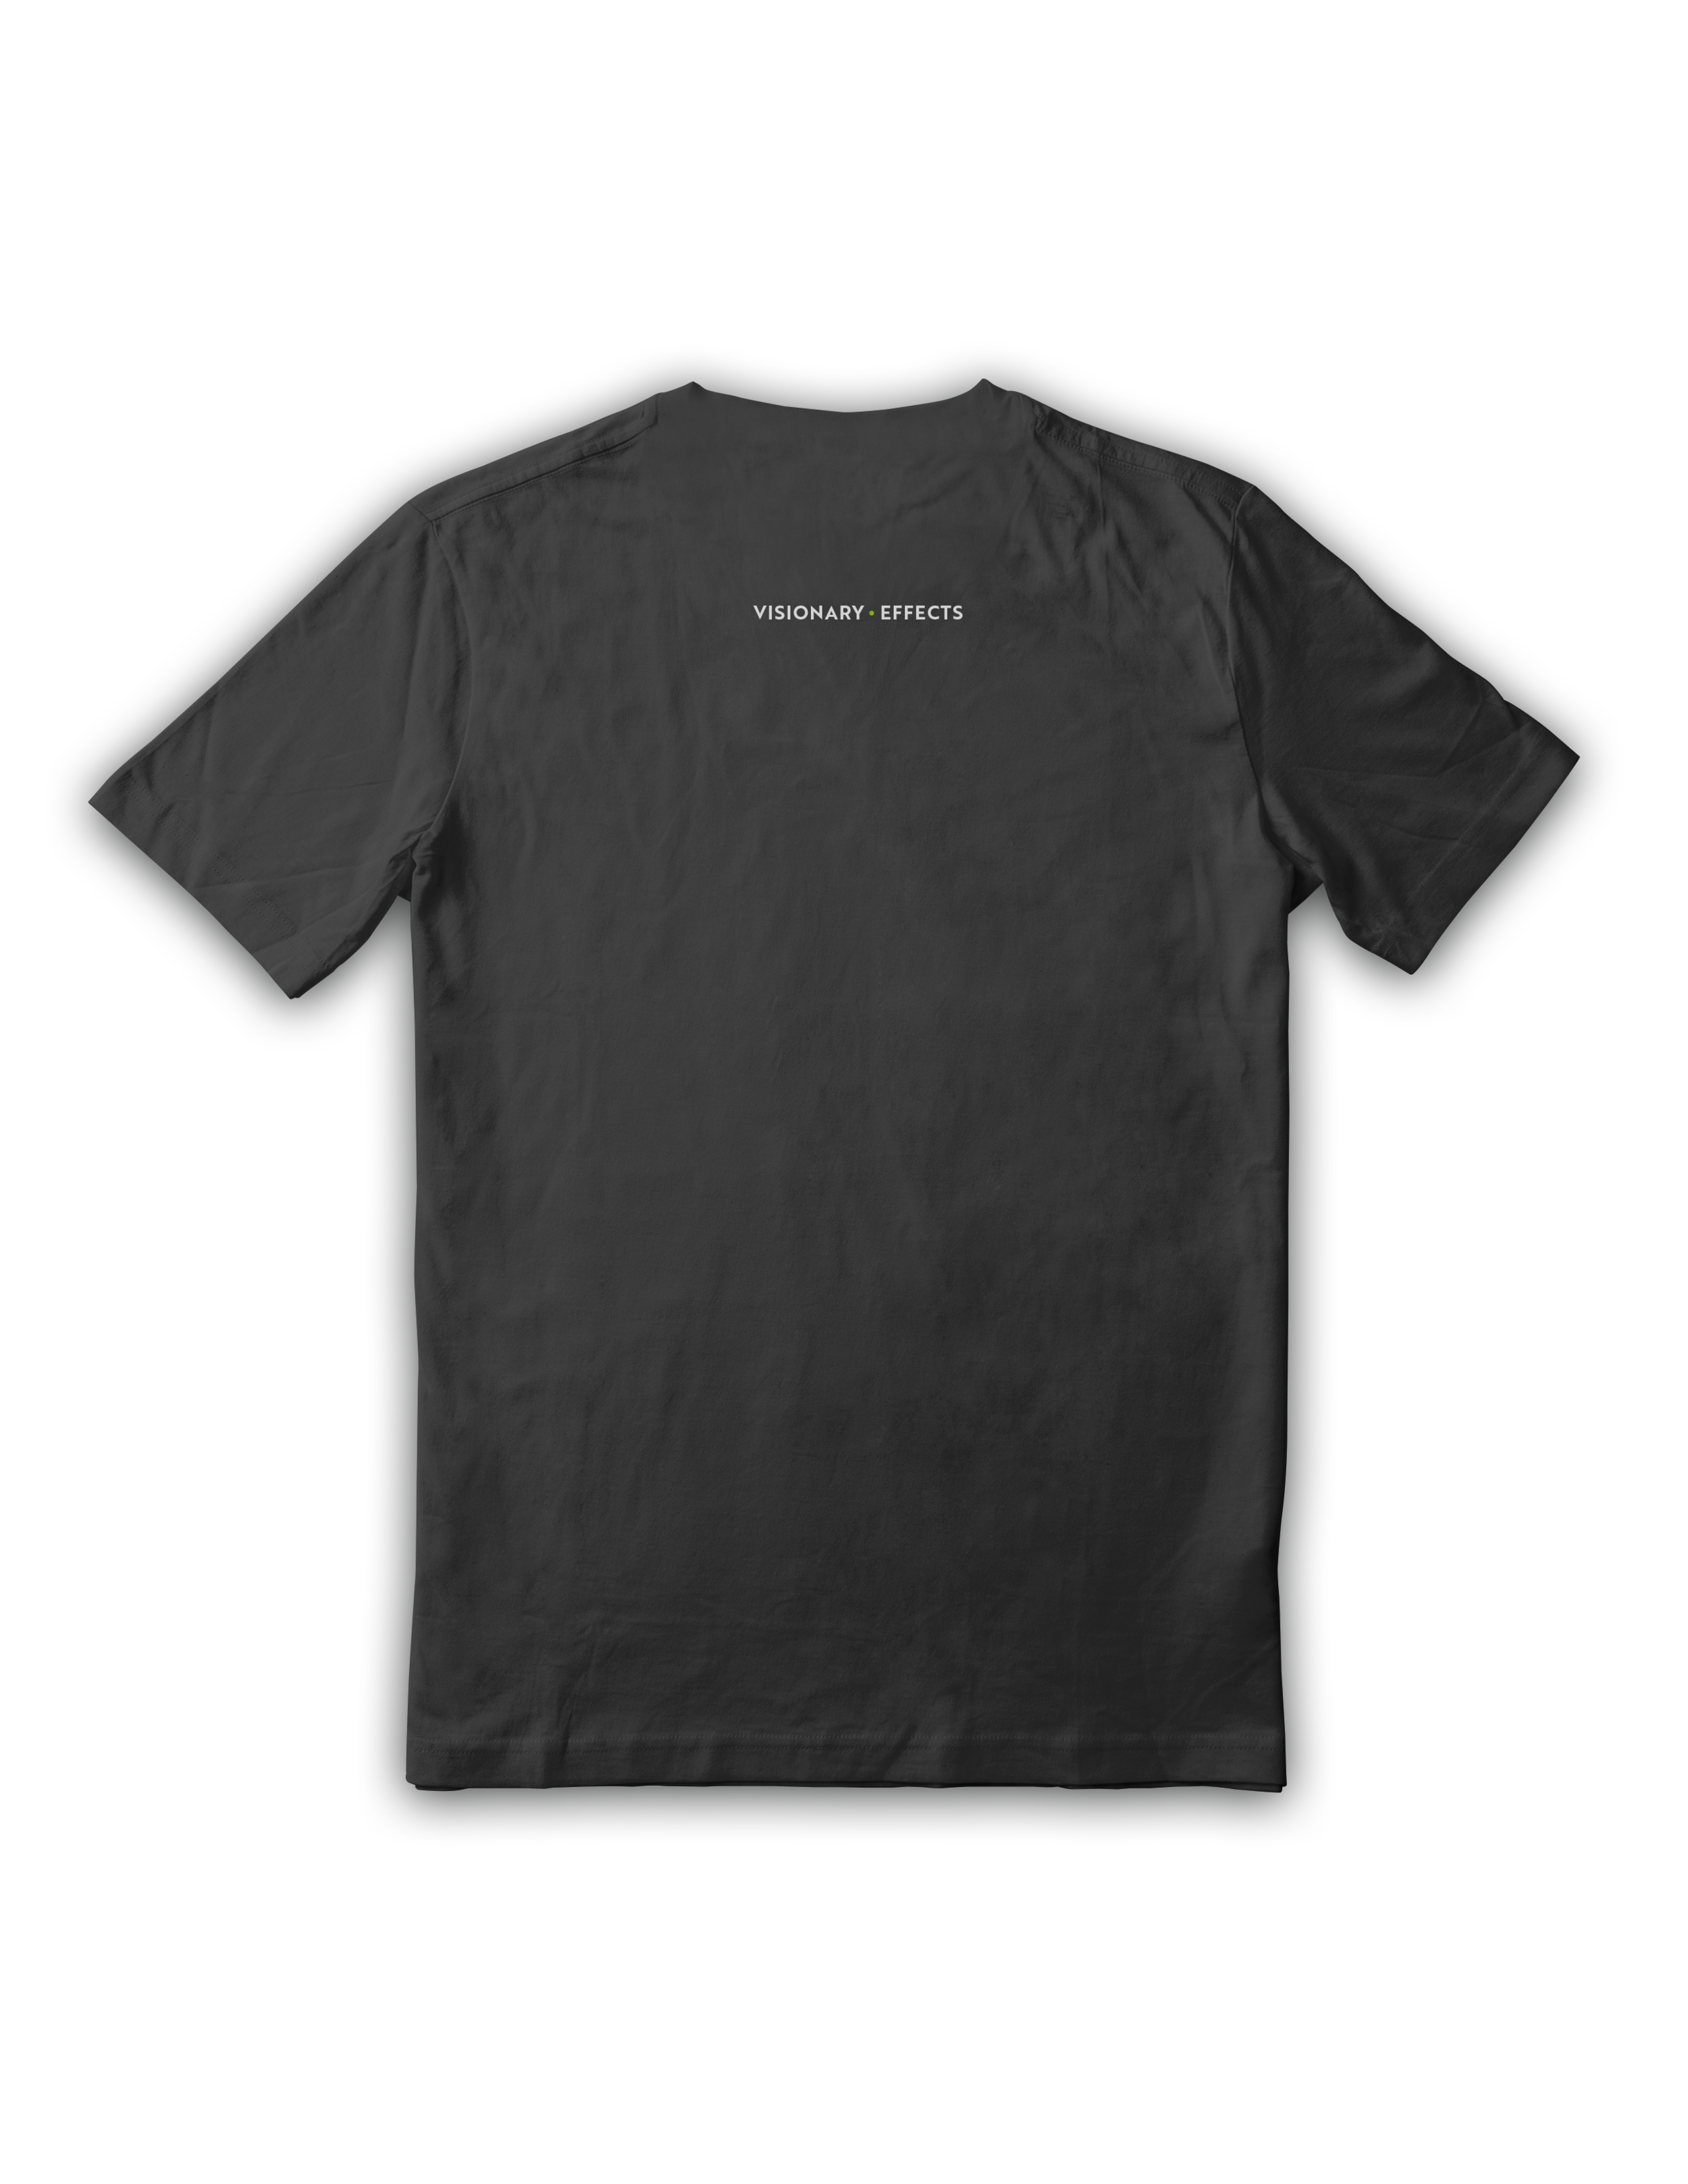 Design-and-Architecture_Branding_Visionary-Effects_Bootstrap-Design-Co_T-shirt-2.png